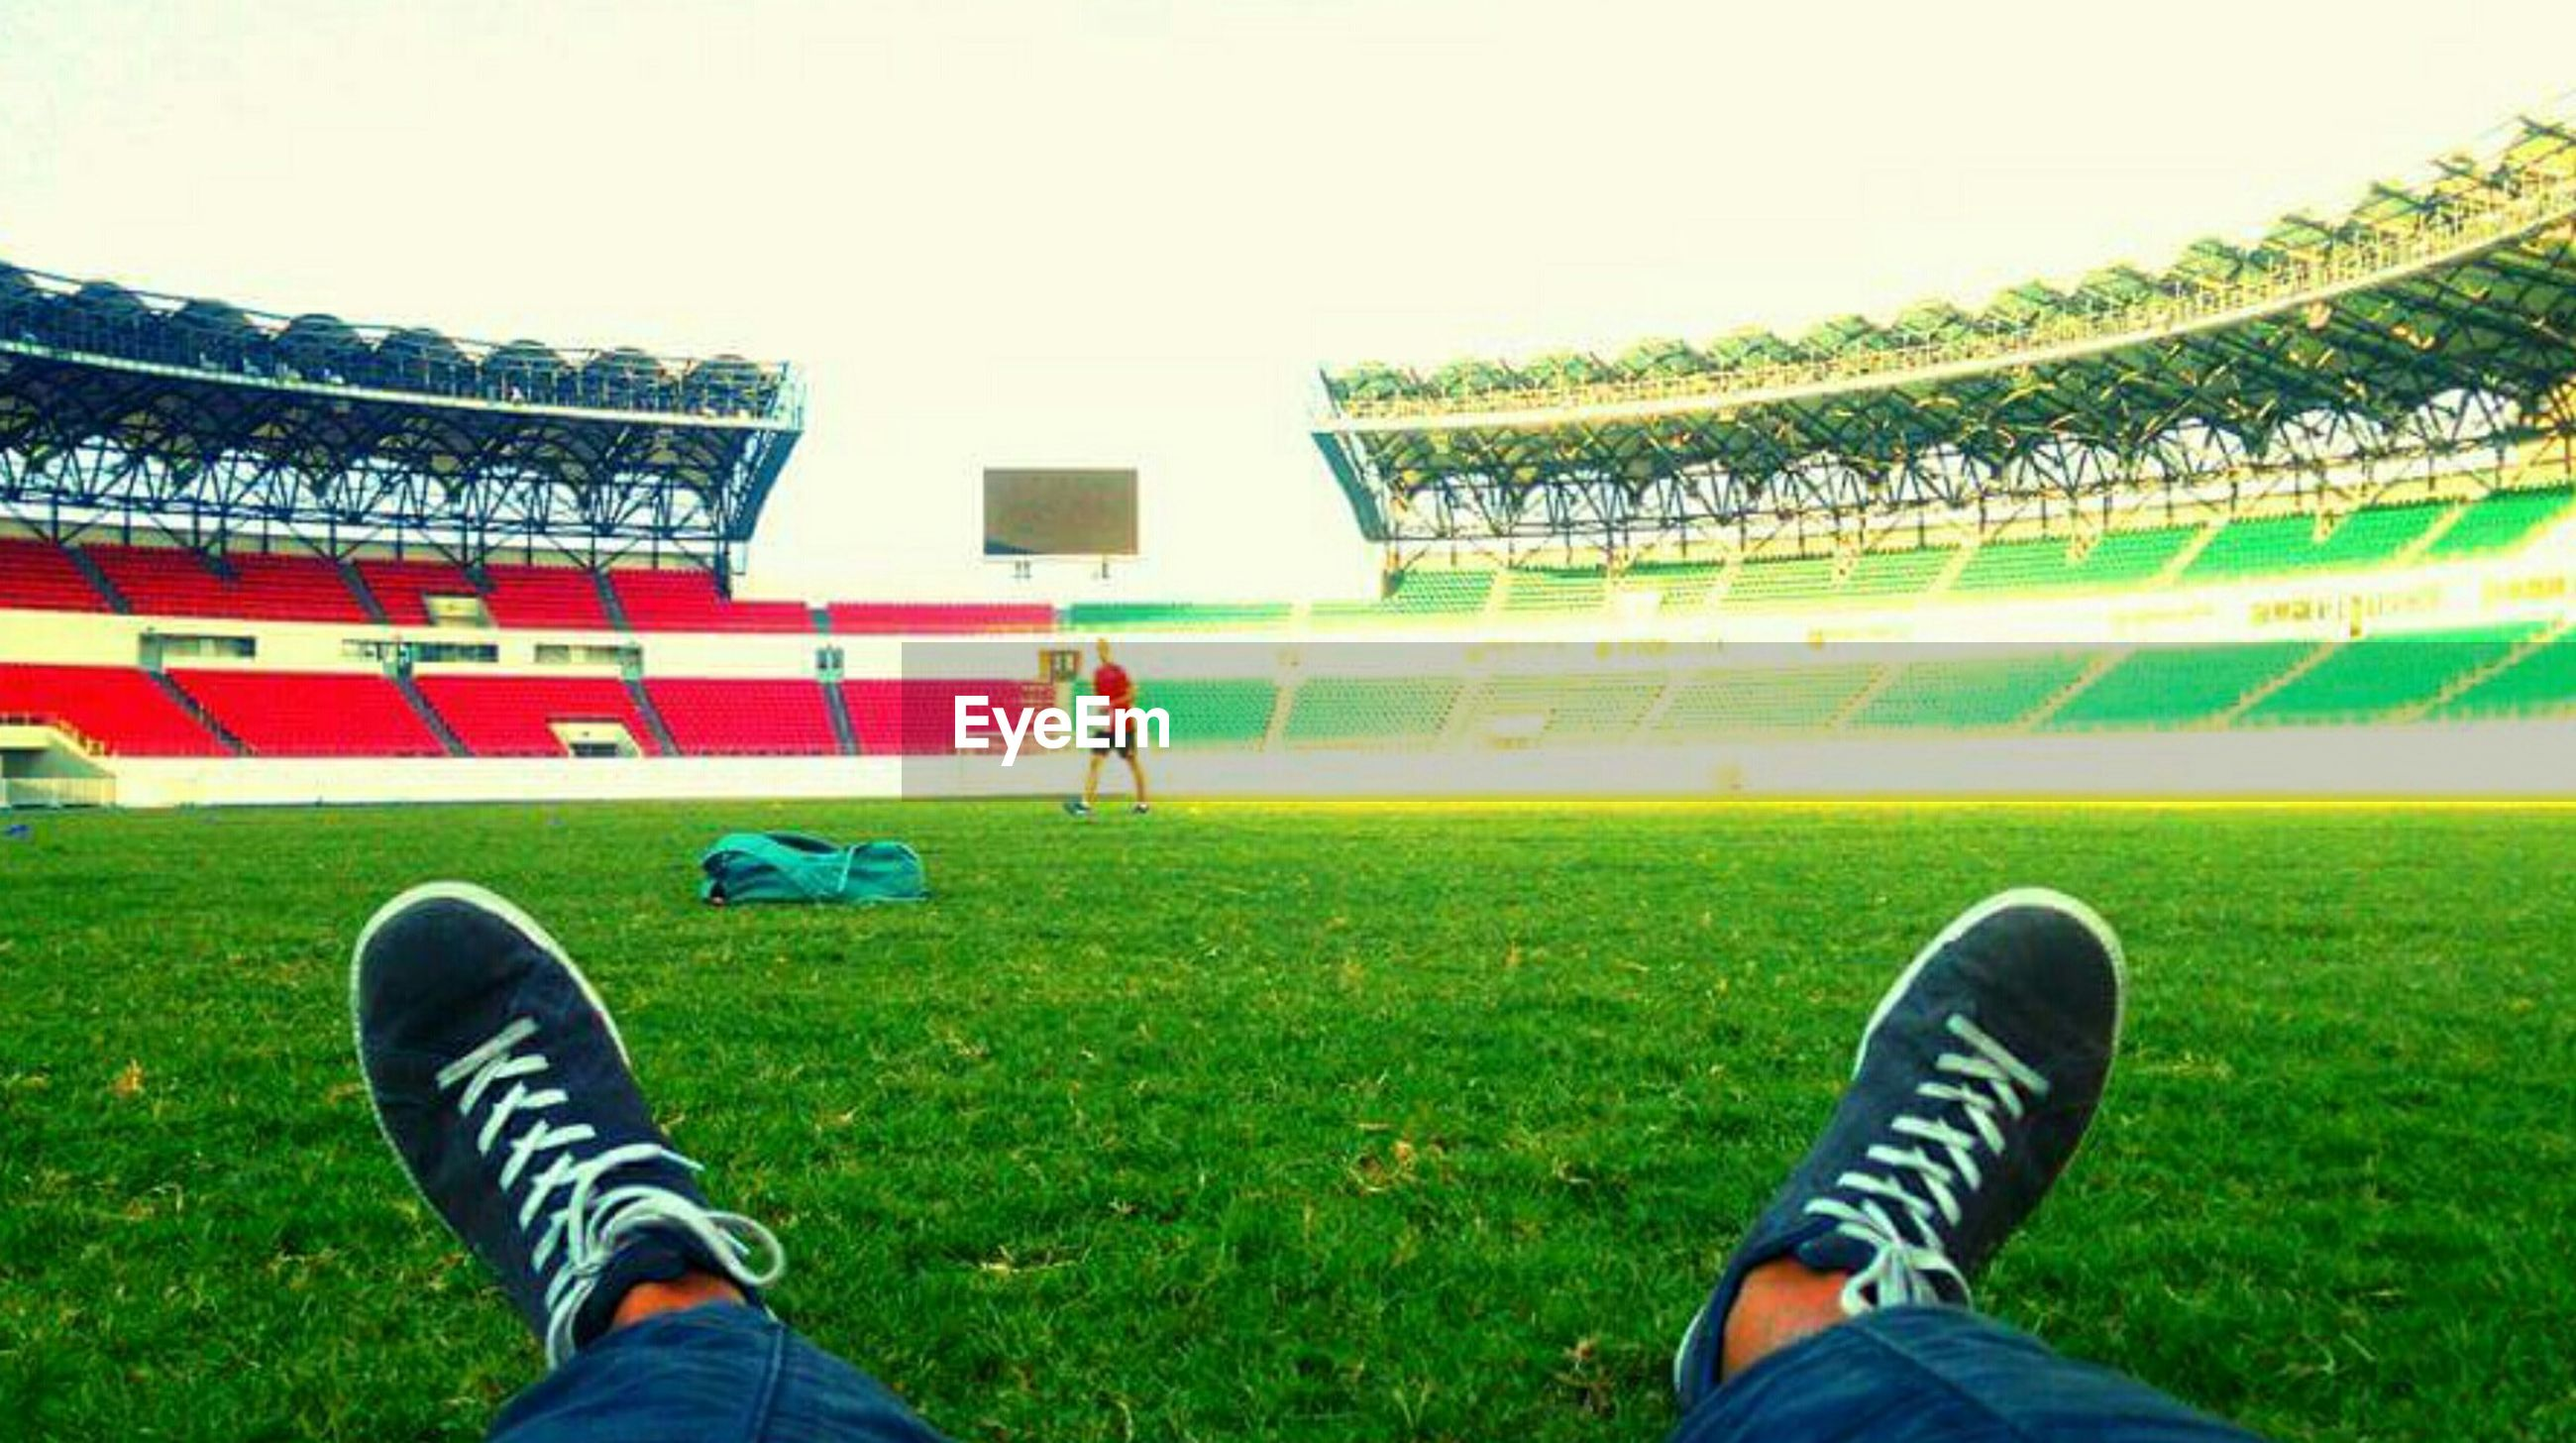 low section, person, grass, shoe, personal perspective, lifestyles, grassy, leisure activity, field, standing, footwear, green color, human foot, unrecognizable person, casual clothing, sport, day, lawn, outdoors, part of, green, landscape, sky, nature, growth